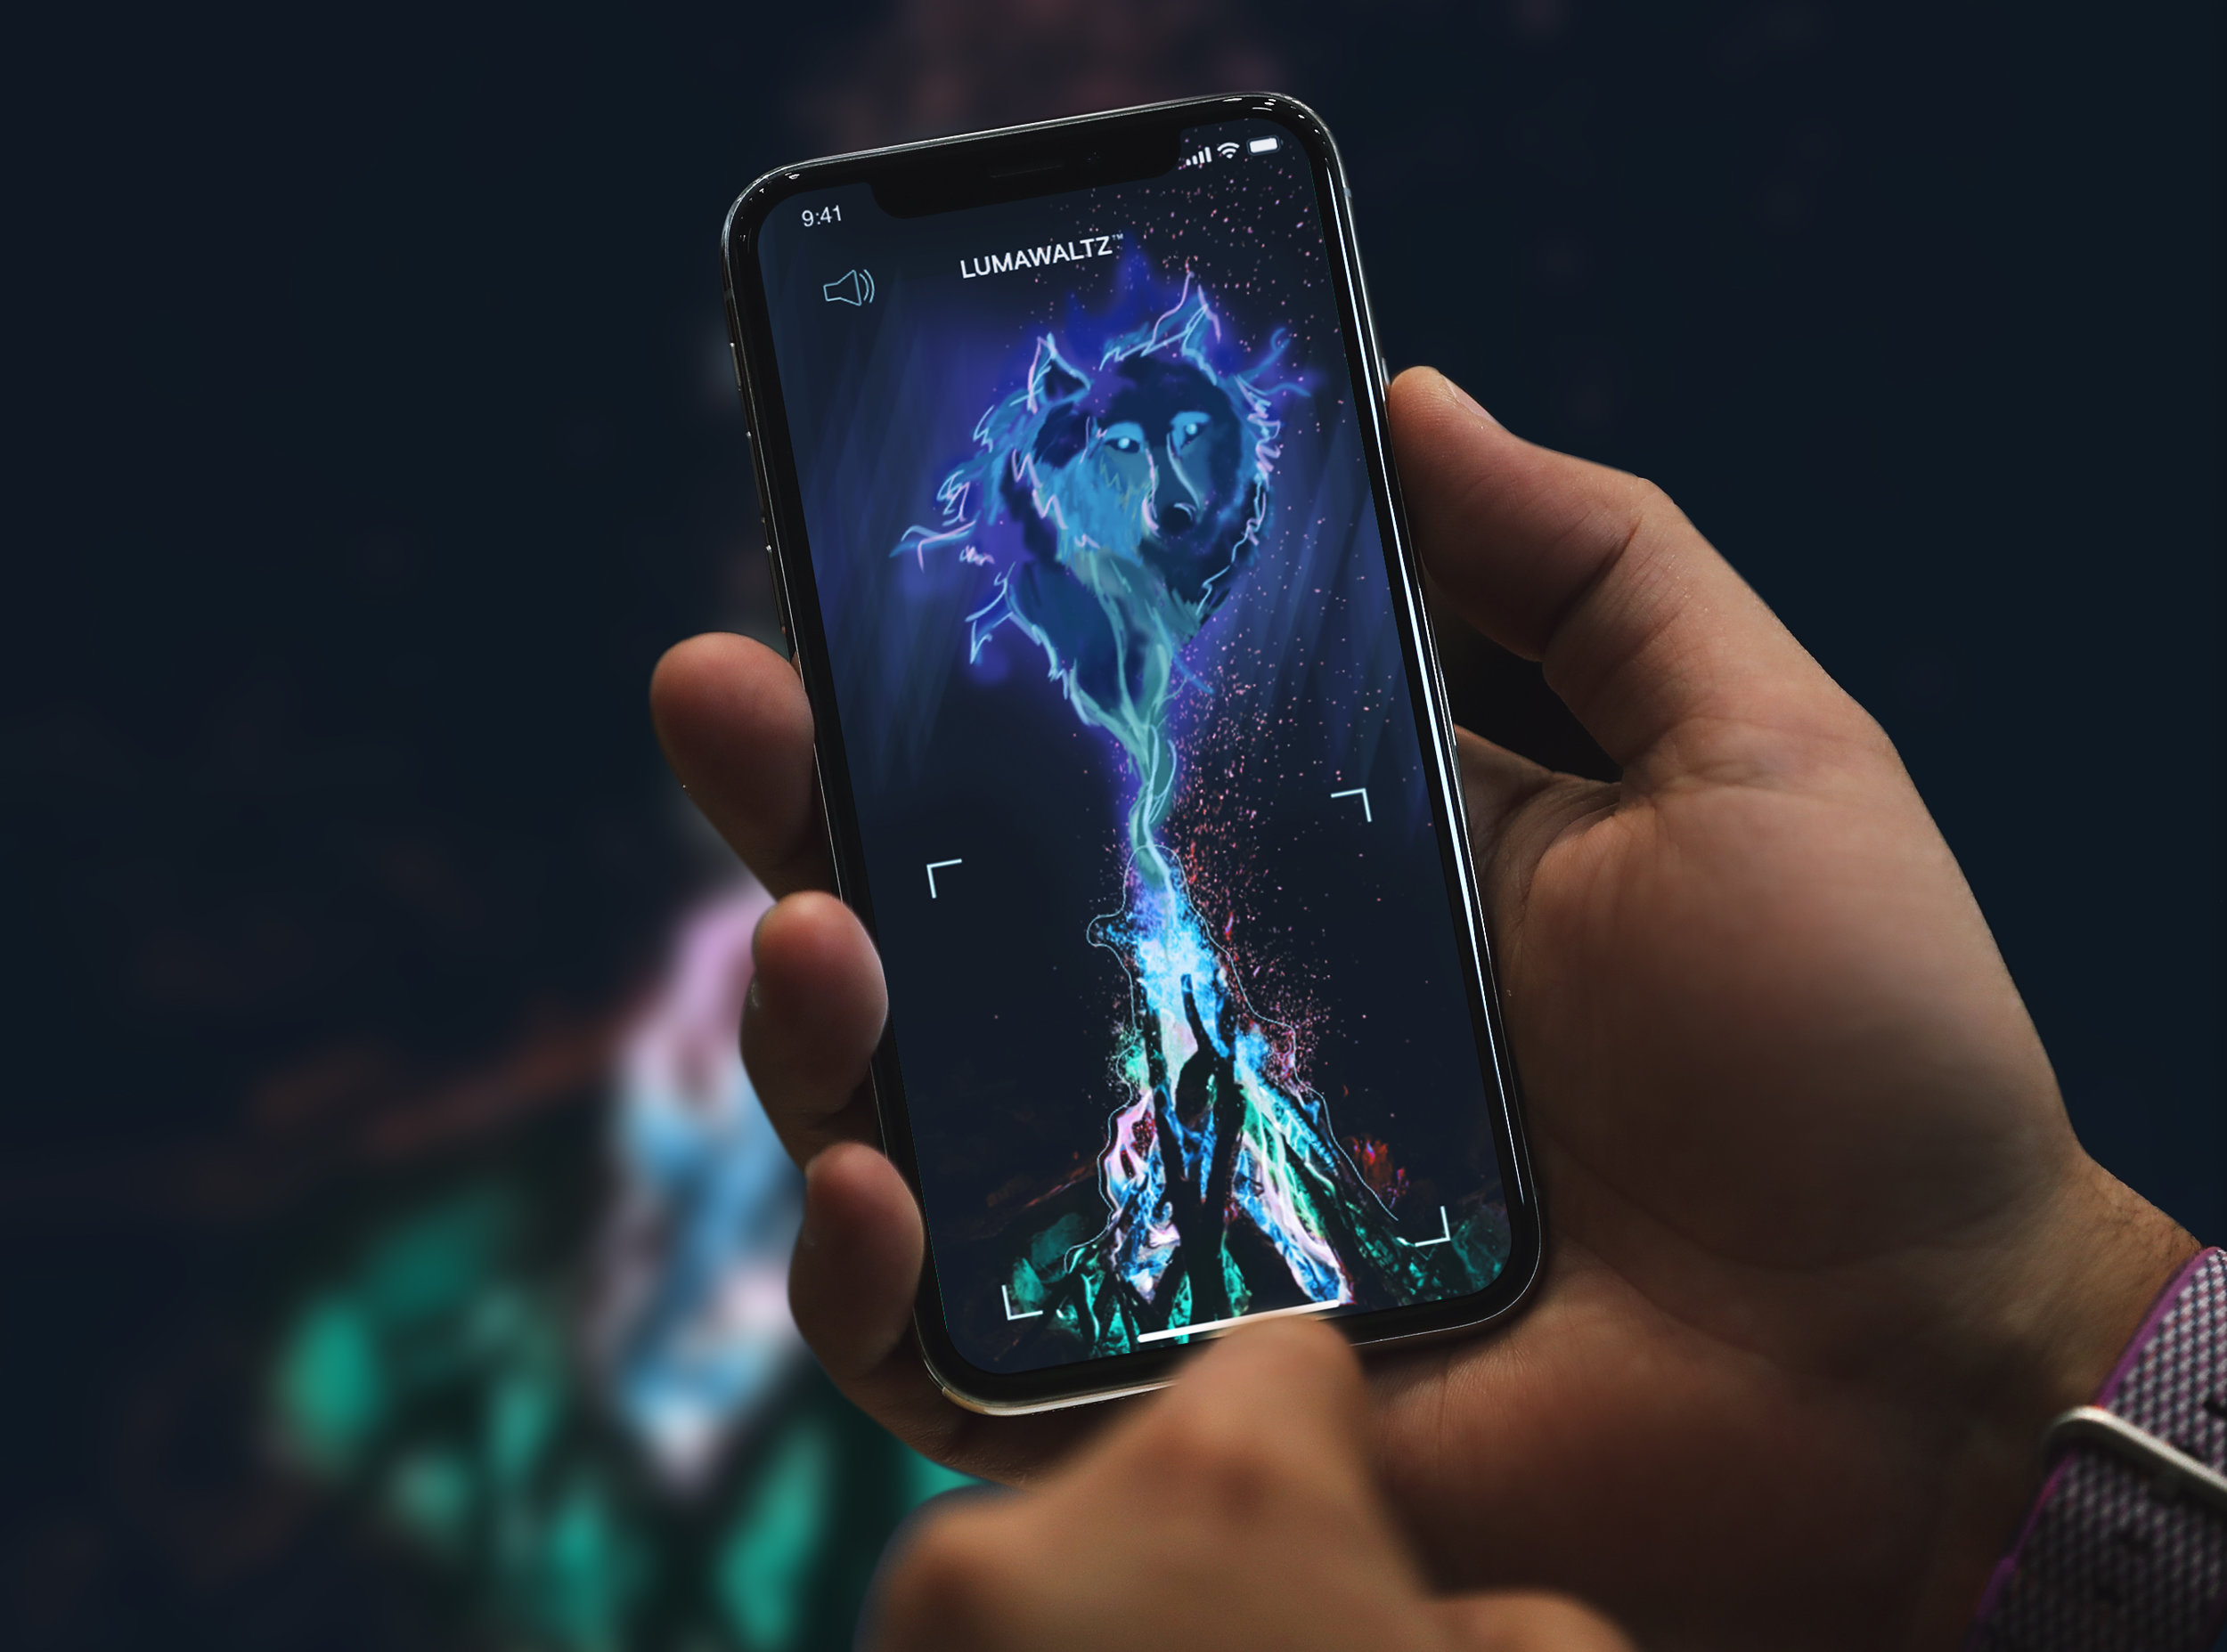 AR experience - When the consumer uses the LUMAWALTZ™ app to scan the colorful flames, an augmented reality feature displays an animated version of the legends of the Northern Lights narrated by the Athabascan people.